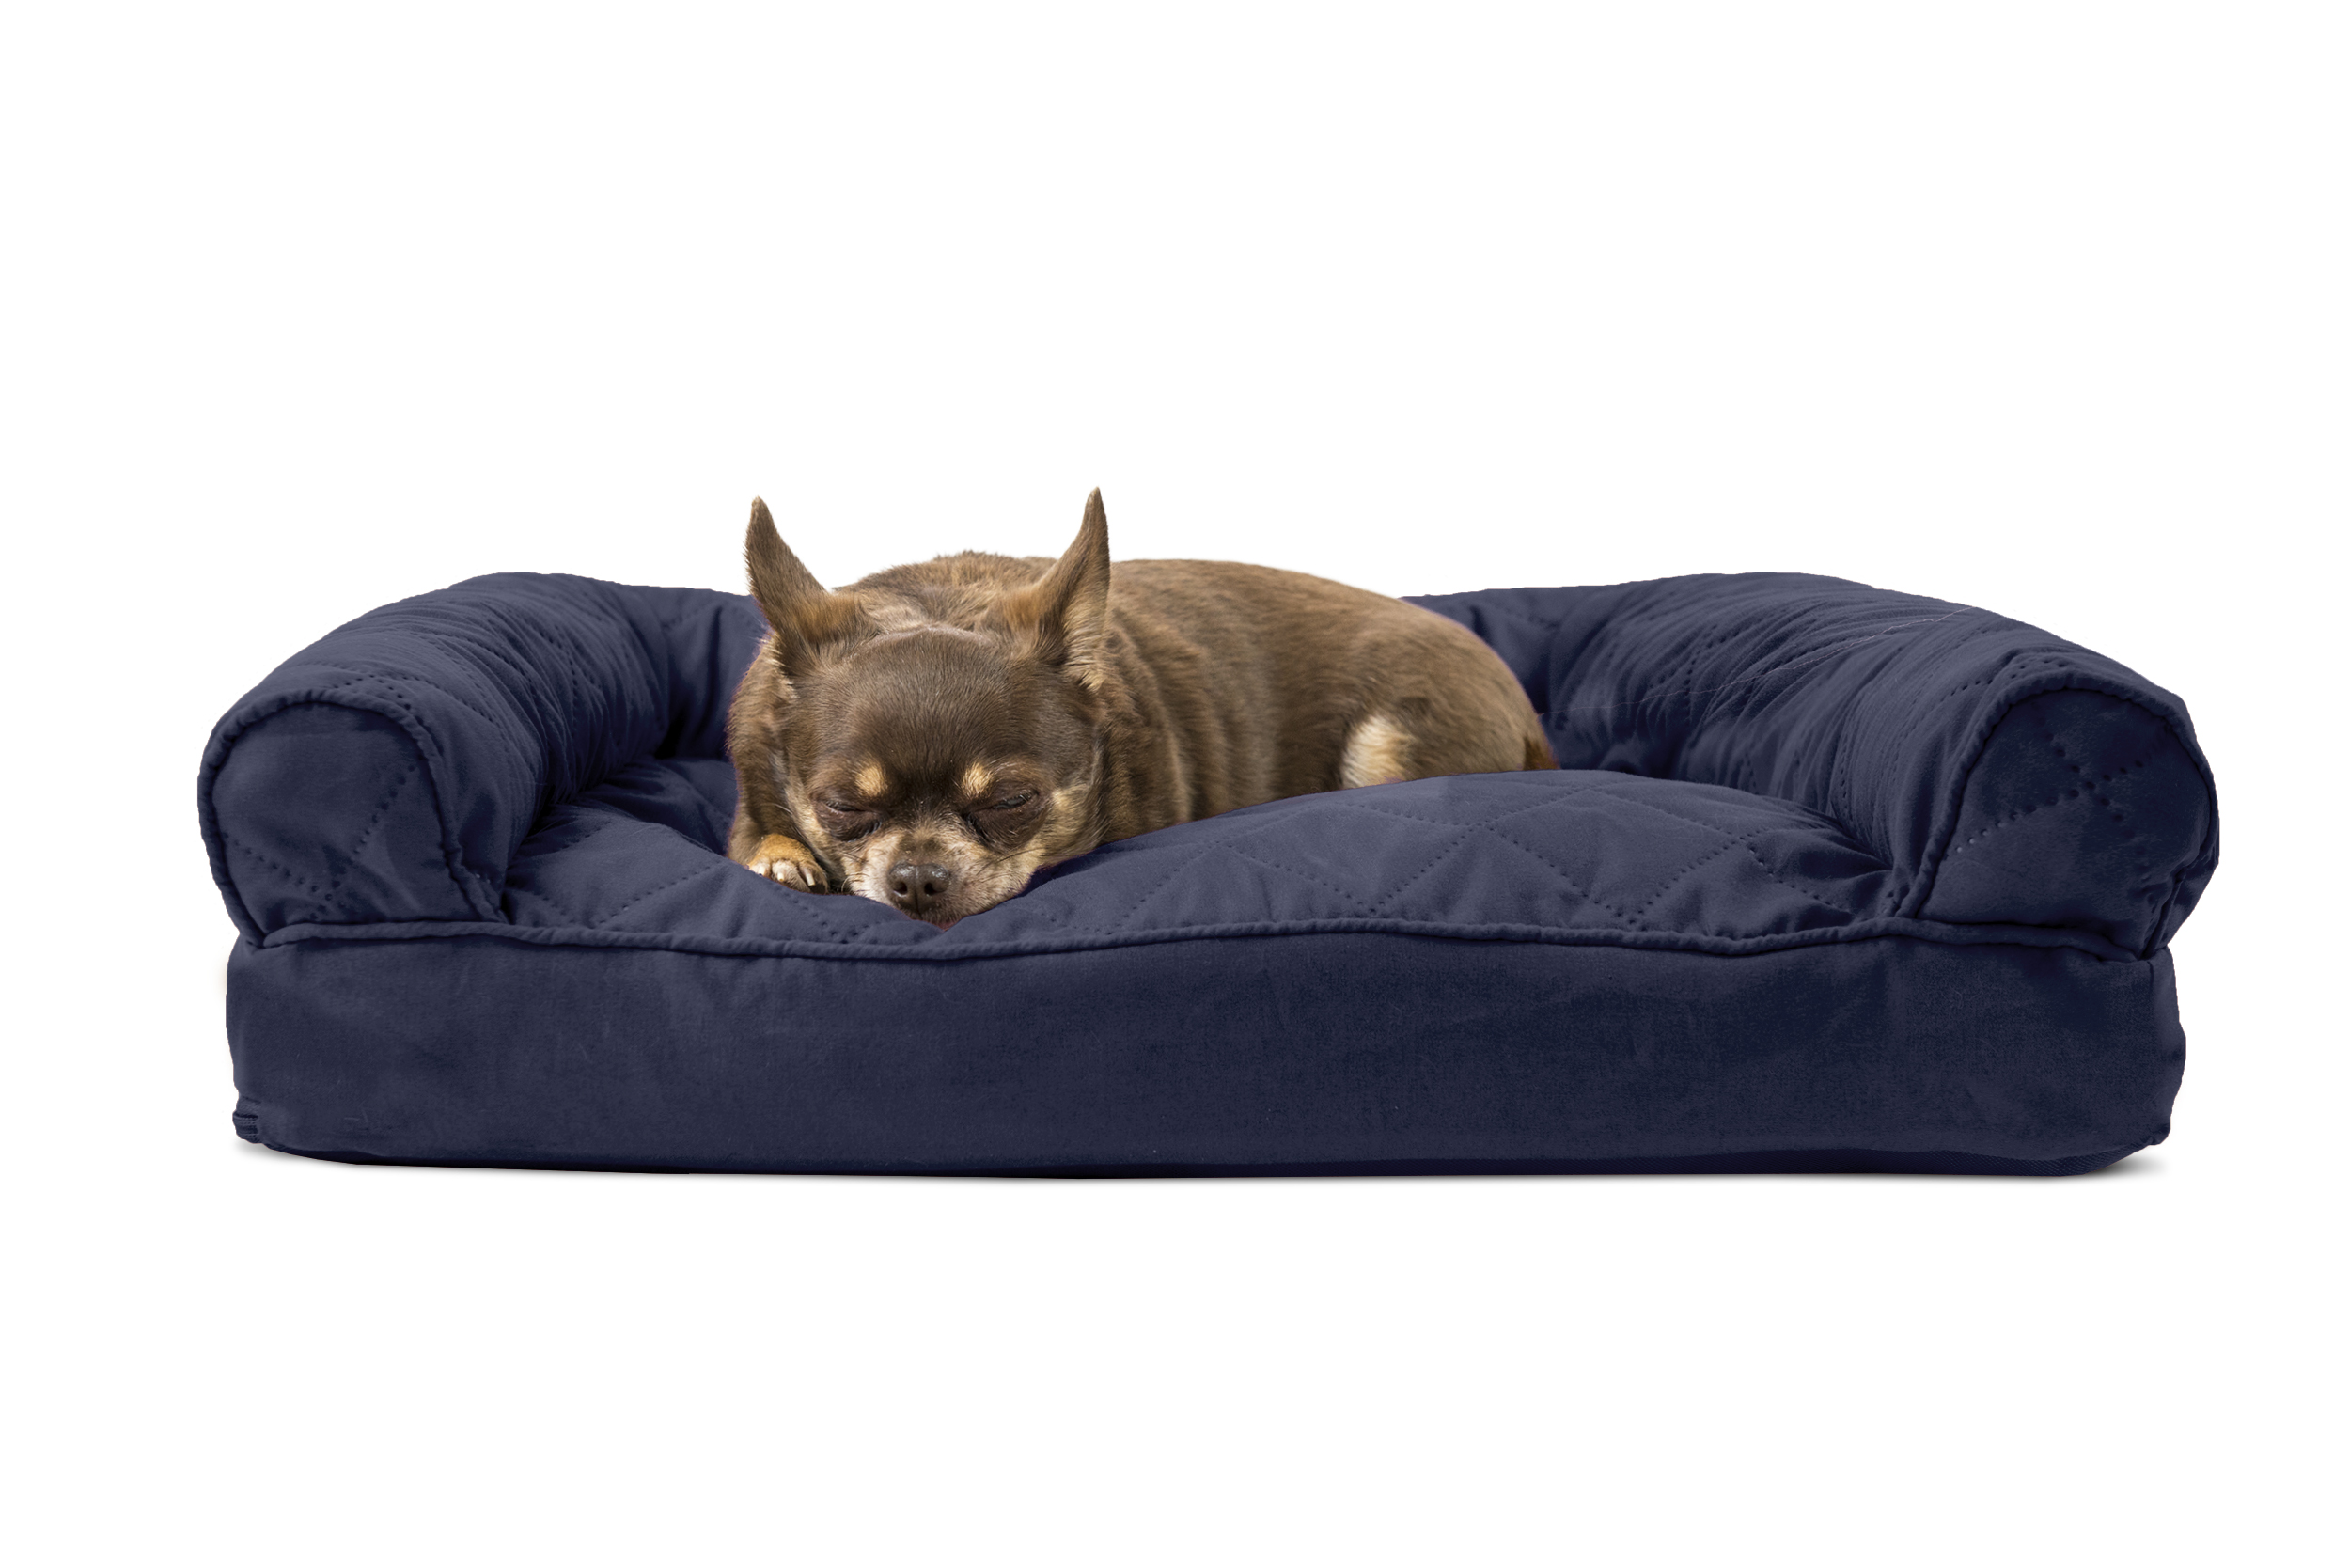 Sofa Pet Sofa Dog Beds You Ll Love Wayfair Thesofa